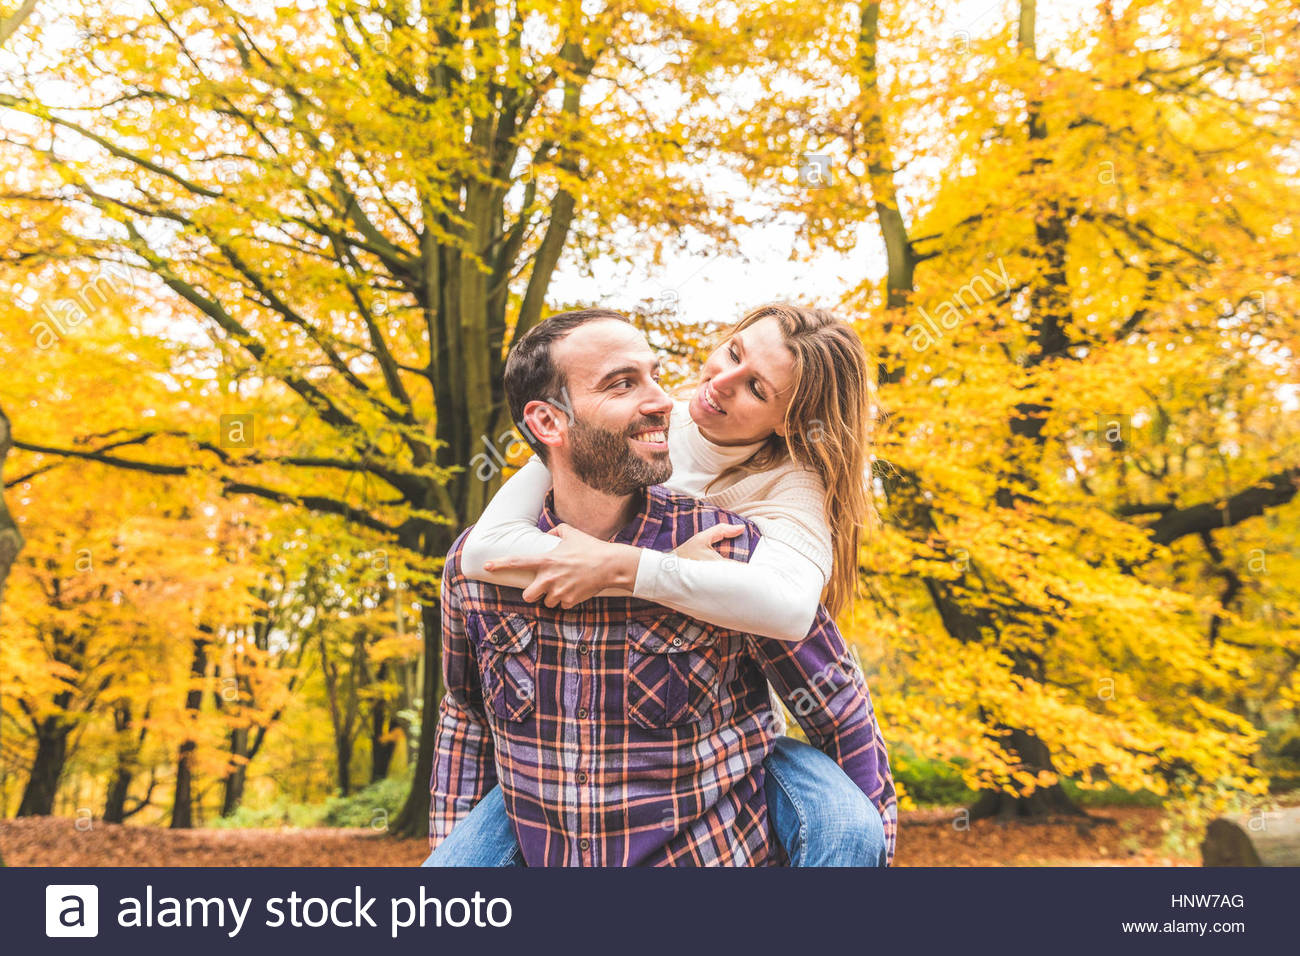 Mid adult couple in park, man giving woman piggyback - Stock Image